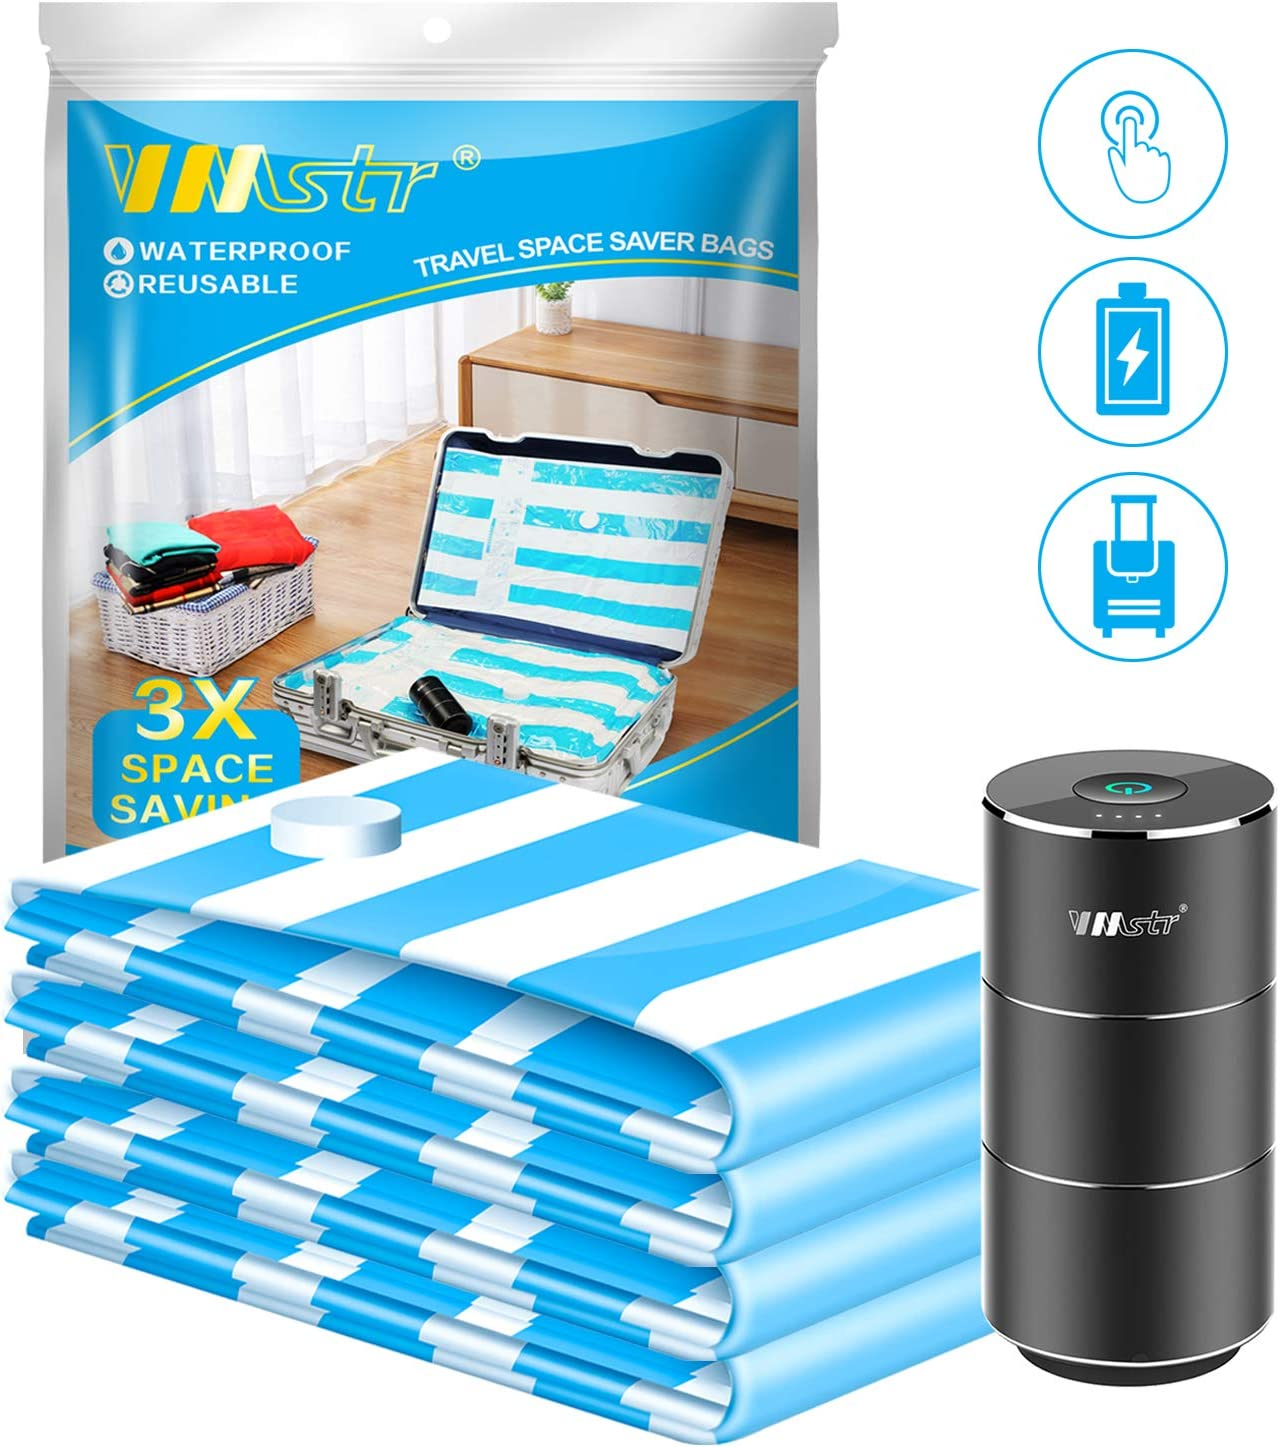 VMSTR Vacuum Storage Space Saver Bags with Rechargeable Electric Pump Reusable Compression Storage Bags for Home Use and Travel (4 Pack)